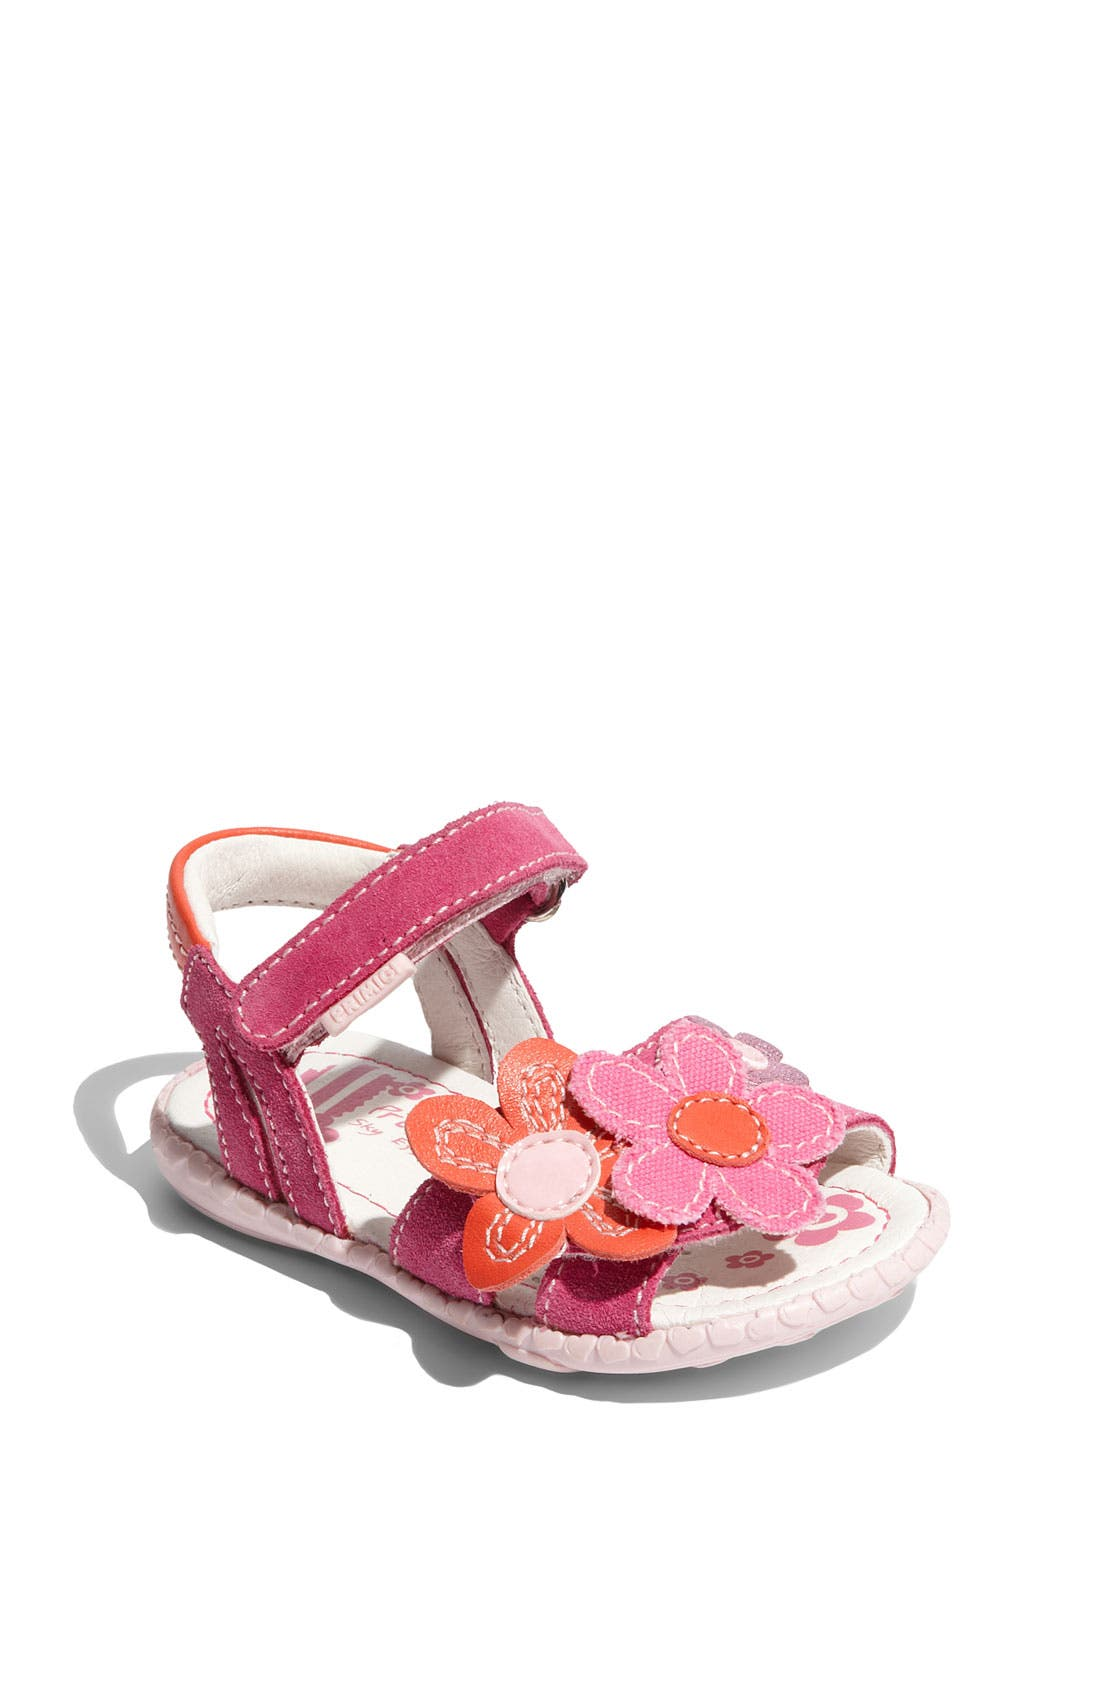 Alternate Image 1 Selected - Primigi 'Julisa' Sandal (Toddler)